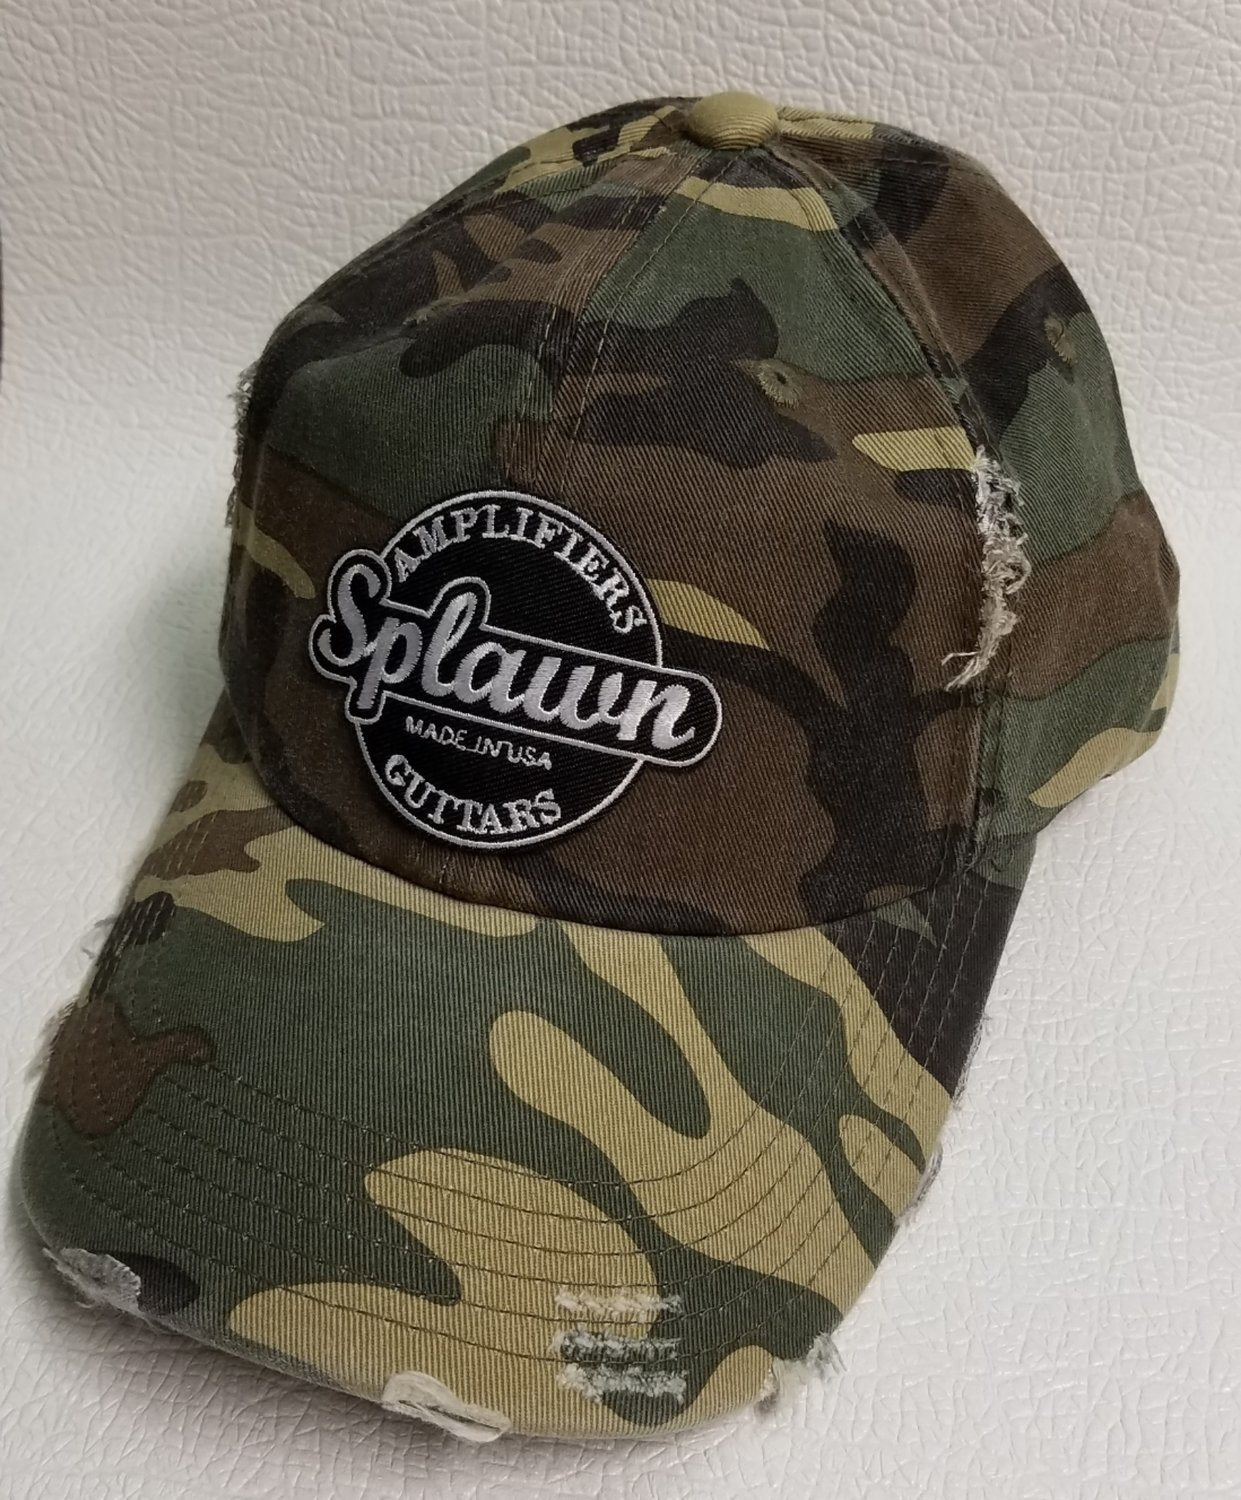 Splawn Amplification Guitars Center Logo District DT600 Distress Cap Camo